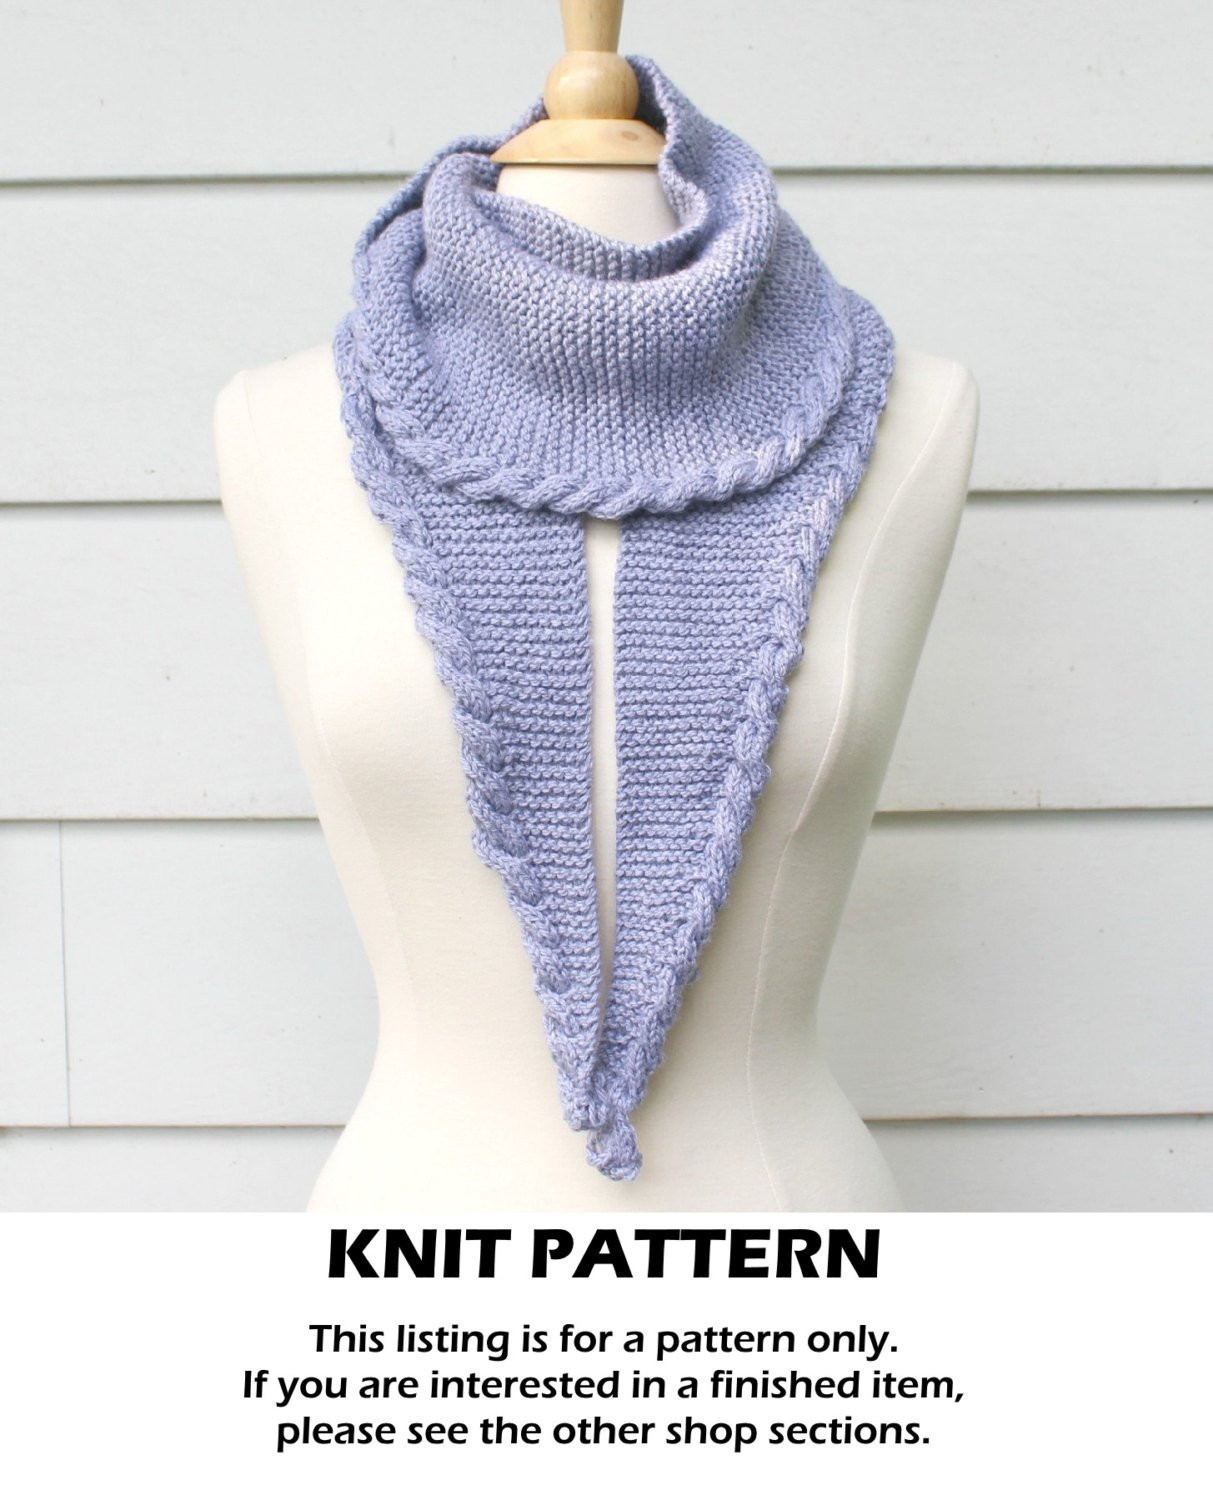 Best Of Knit Pattern Knit Scarf Pattern Cable Scarf Pattern Knit Cable Scarf Pattern Of Attractive 46 Pics Cable Scarf Pattern